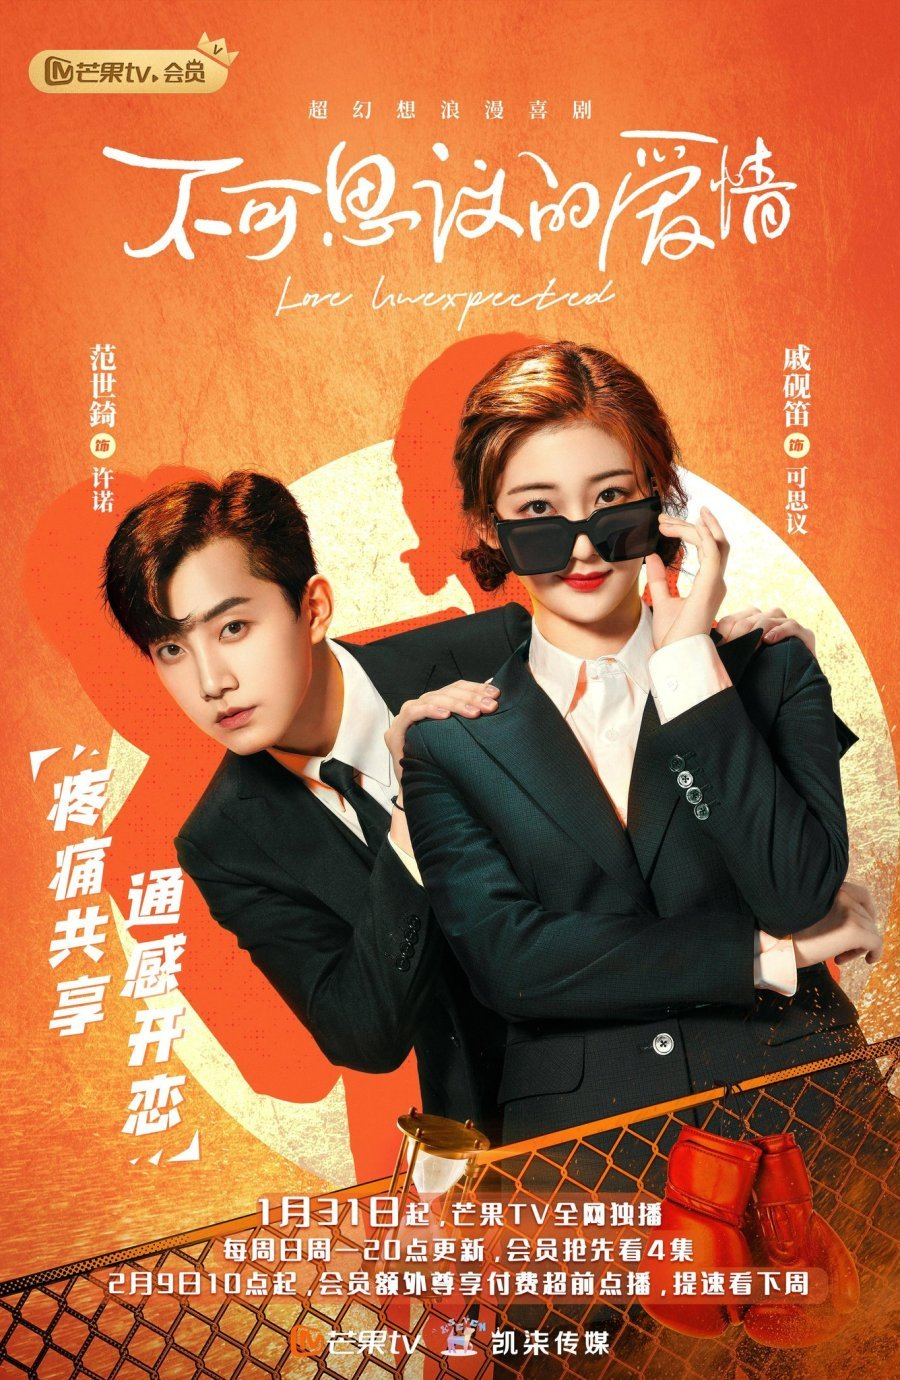 Love Unexpected Poster ( Credit Mango TV)